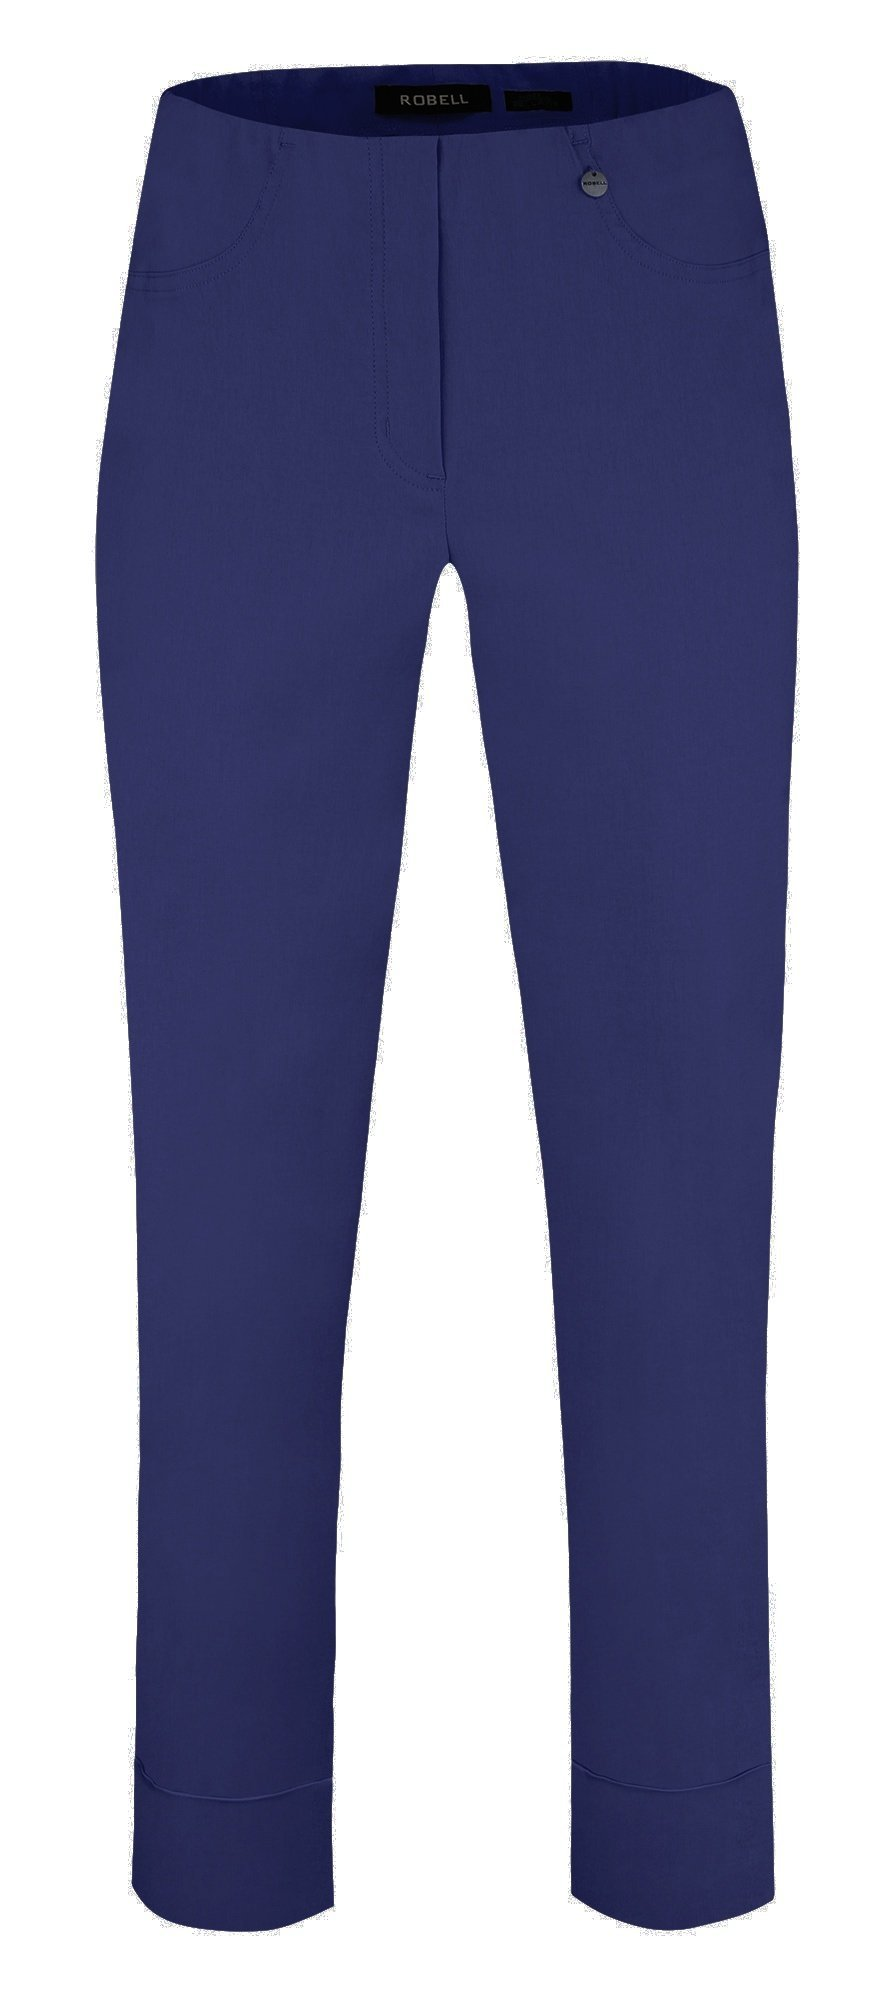 Bella Ankle Grazer Trouser with a Cuff in French Blue Trousers Robell